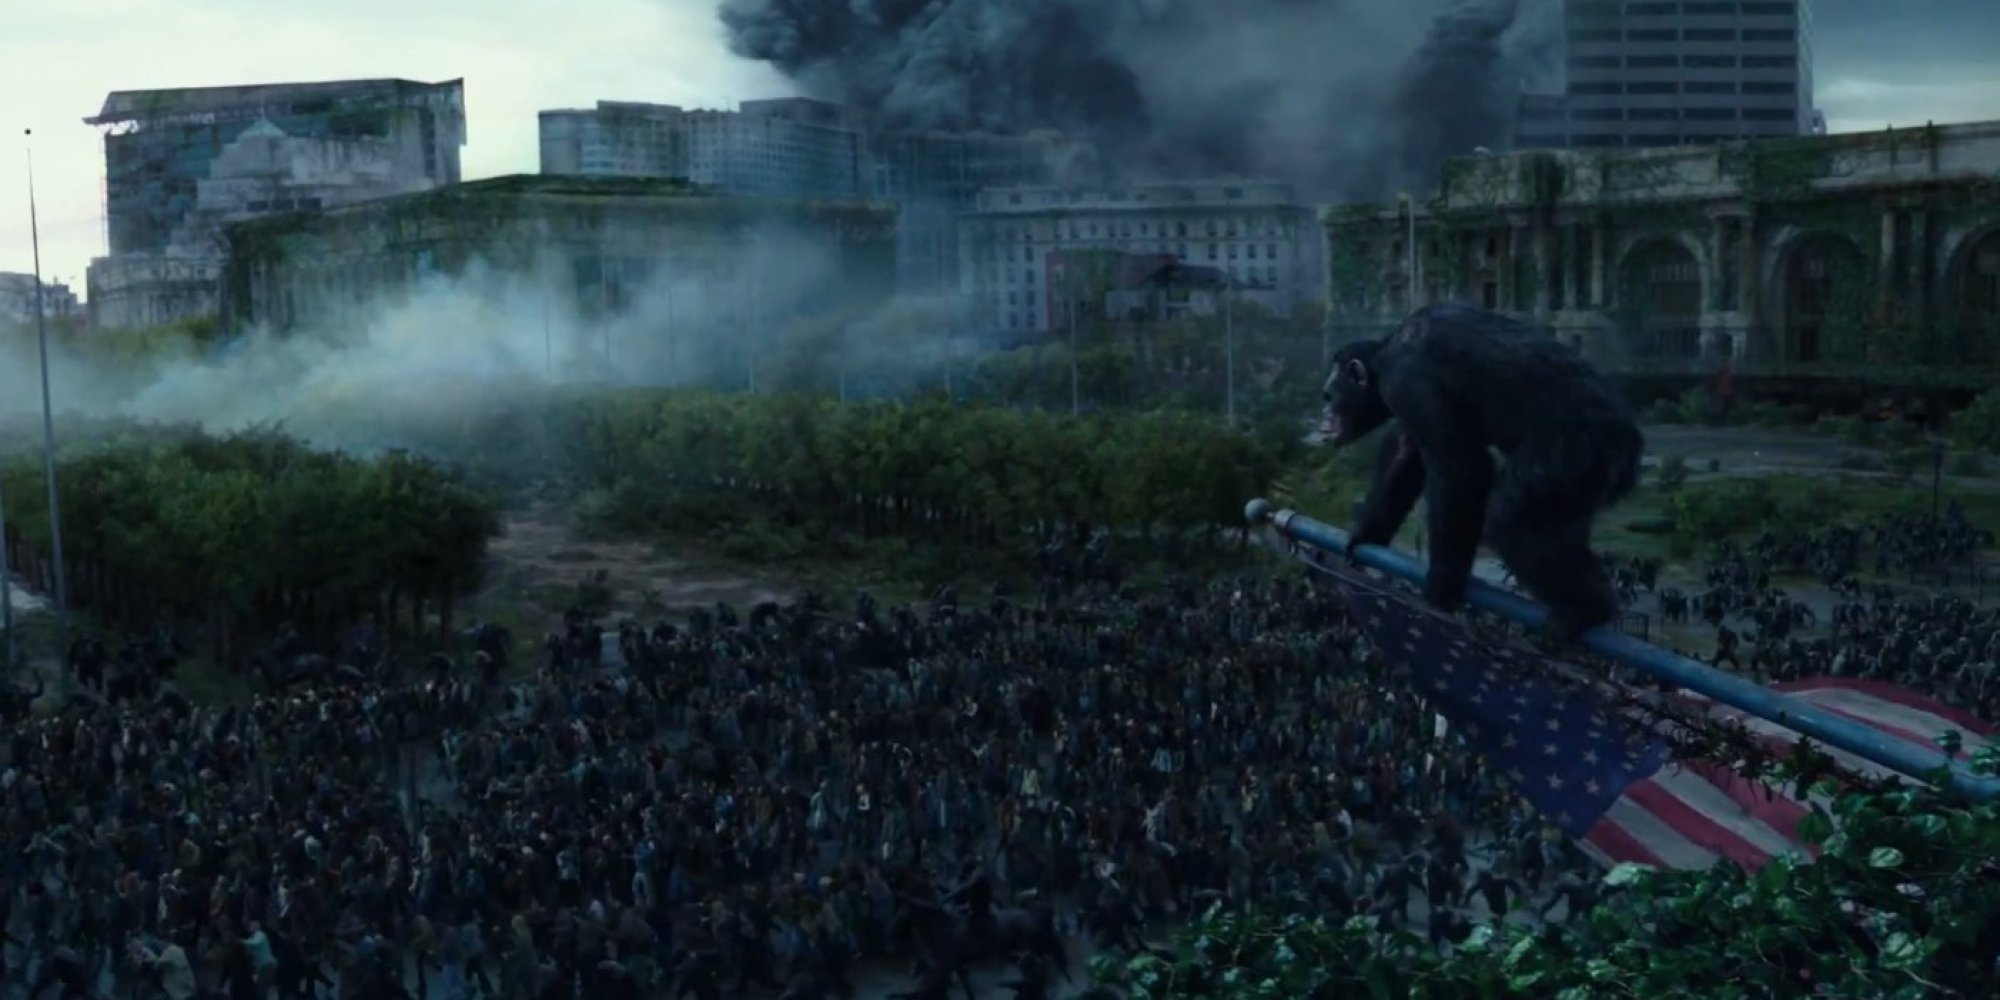 Watch The Full Trailer For 'Dawn Of The Planet Of The Apes'